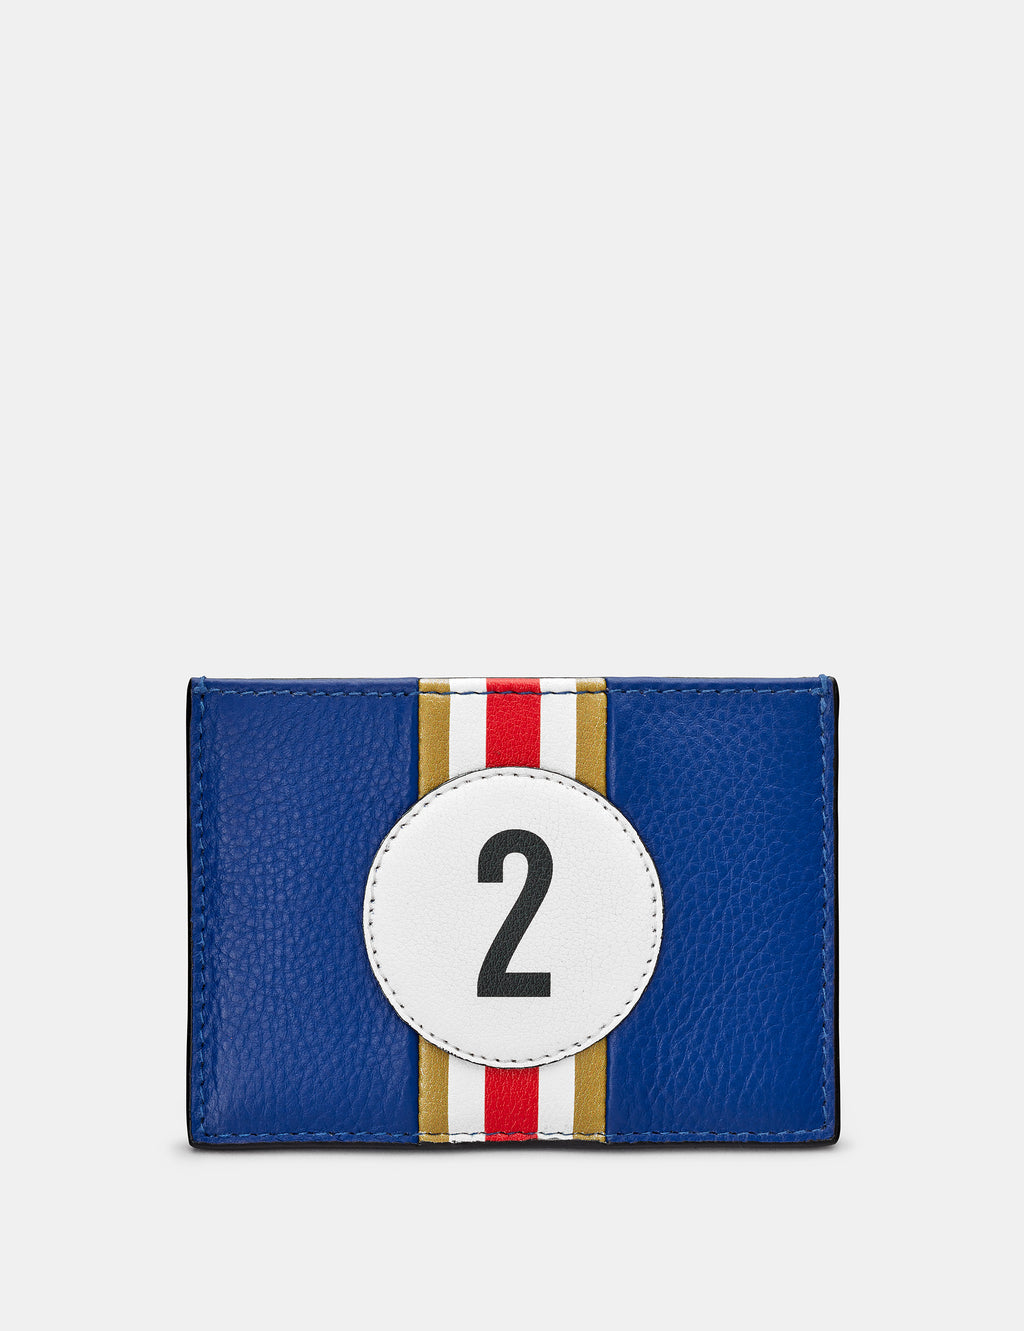 Car Livery No. 2 Blue and Black Leather Card Holder